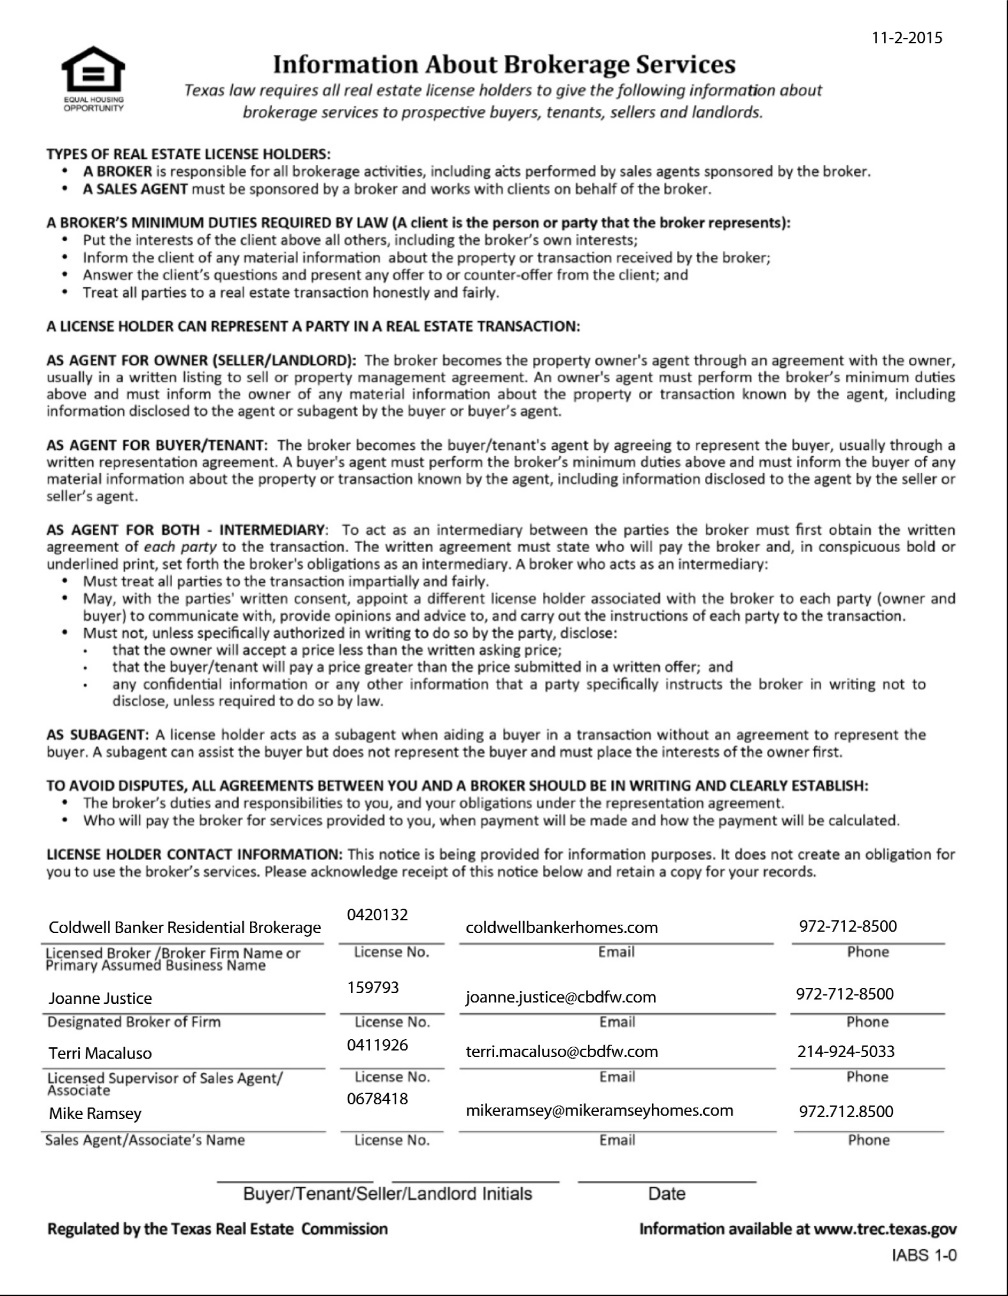 Texas Real Estate Commission (TREC) Information About Brokerage Services Form-166